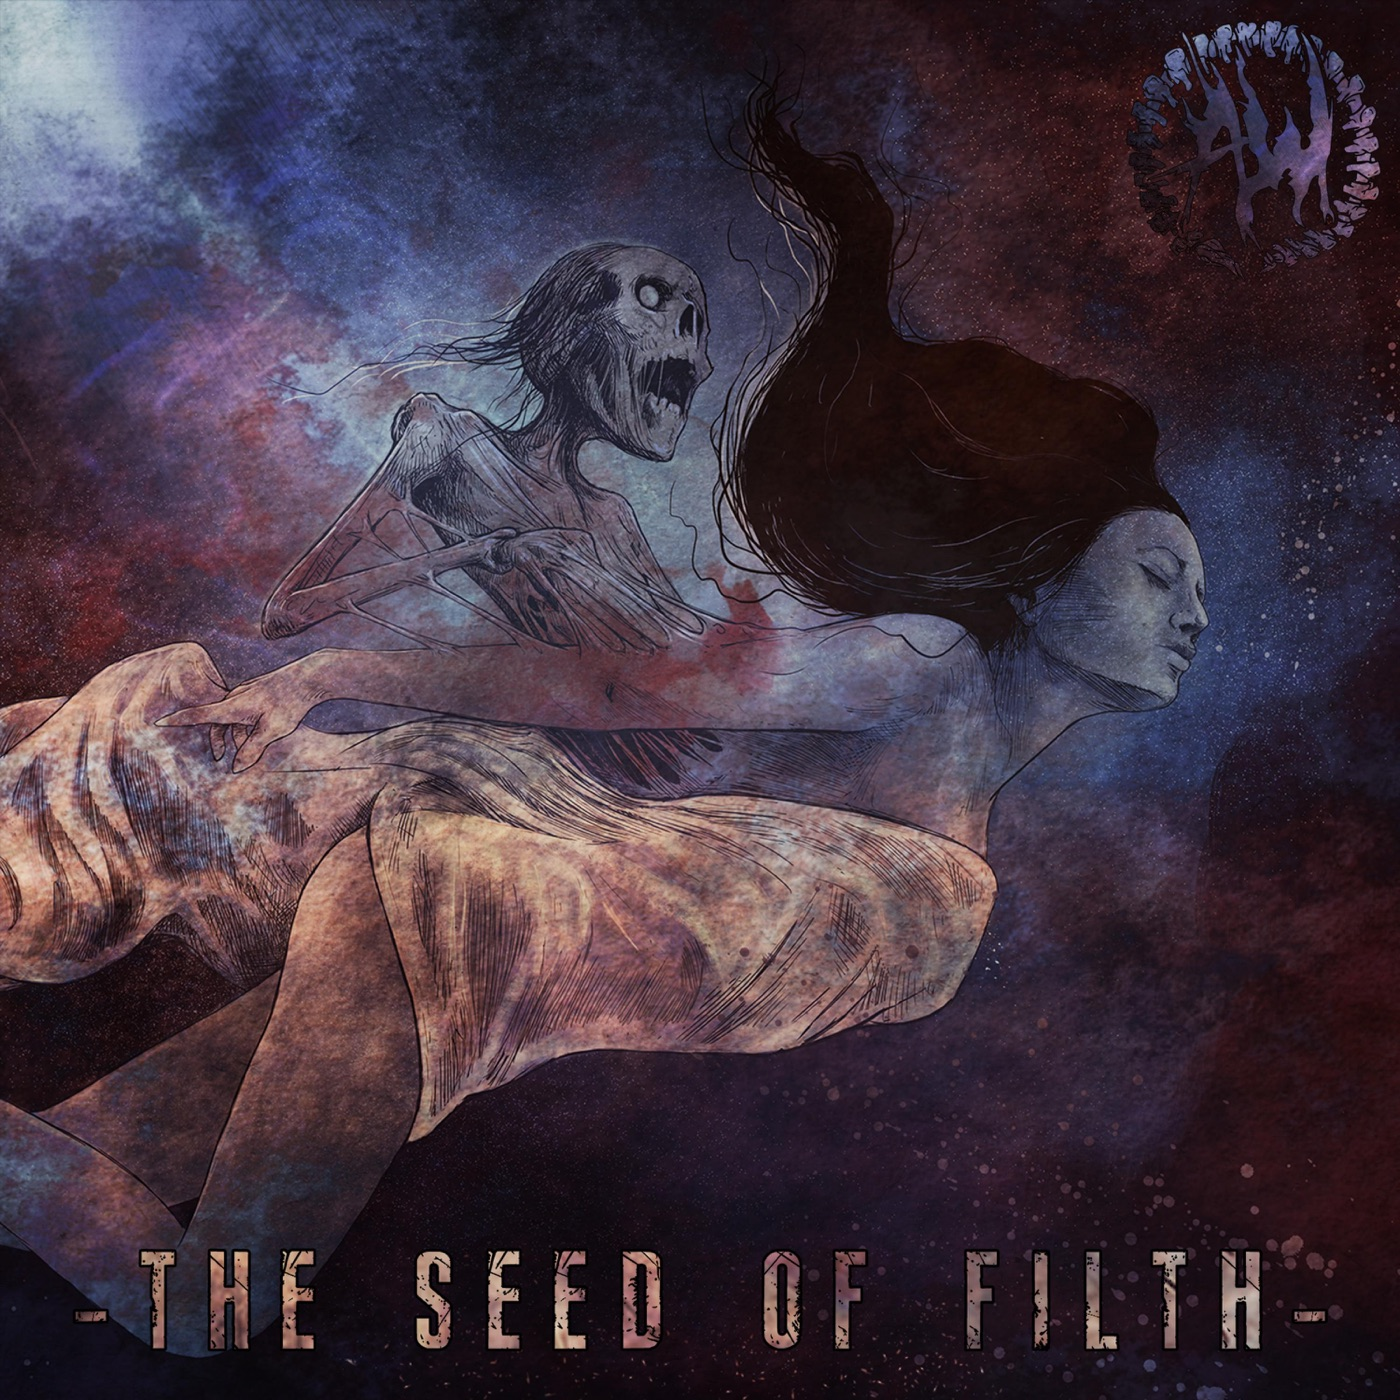 Abyss Walker - The Seed of Filth (Featuring Cody Harmon) [single] (2018)